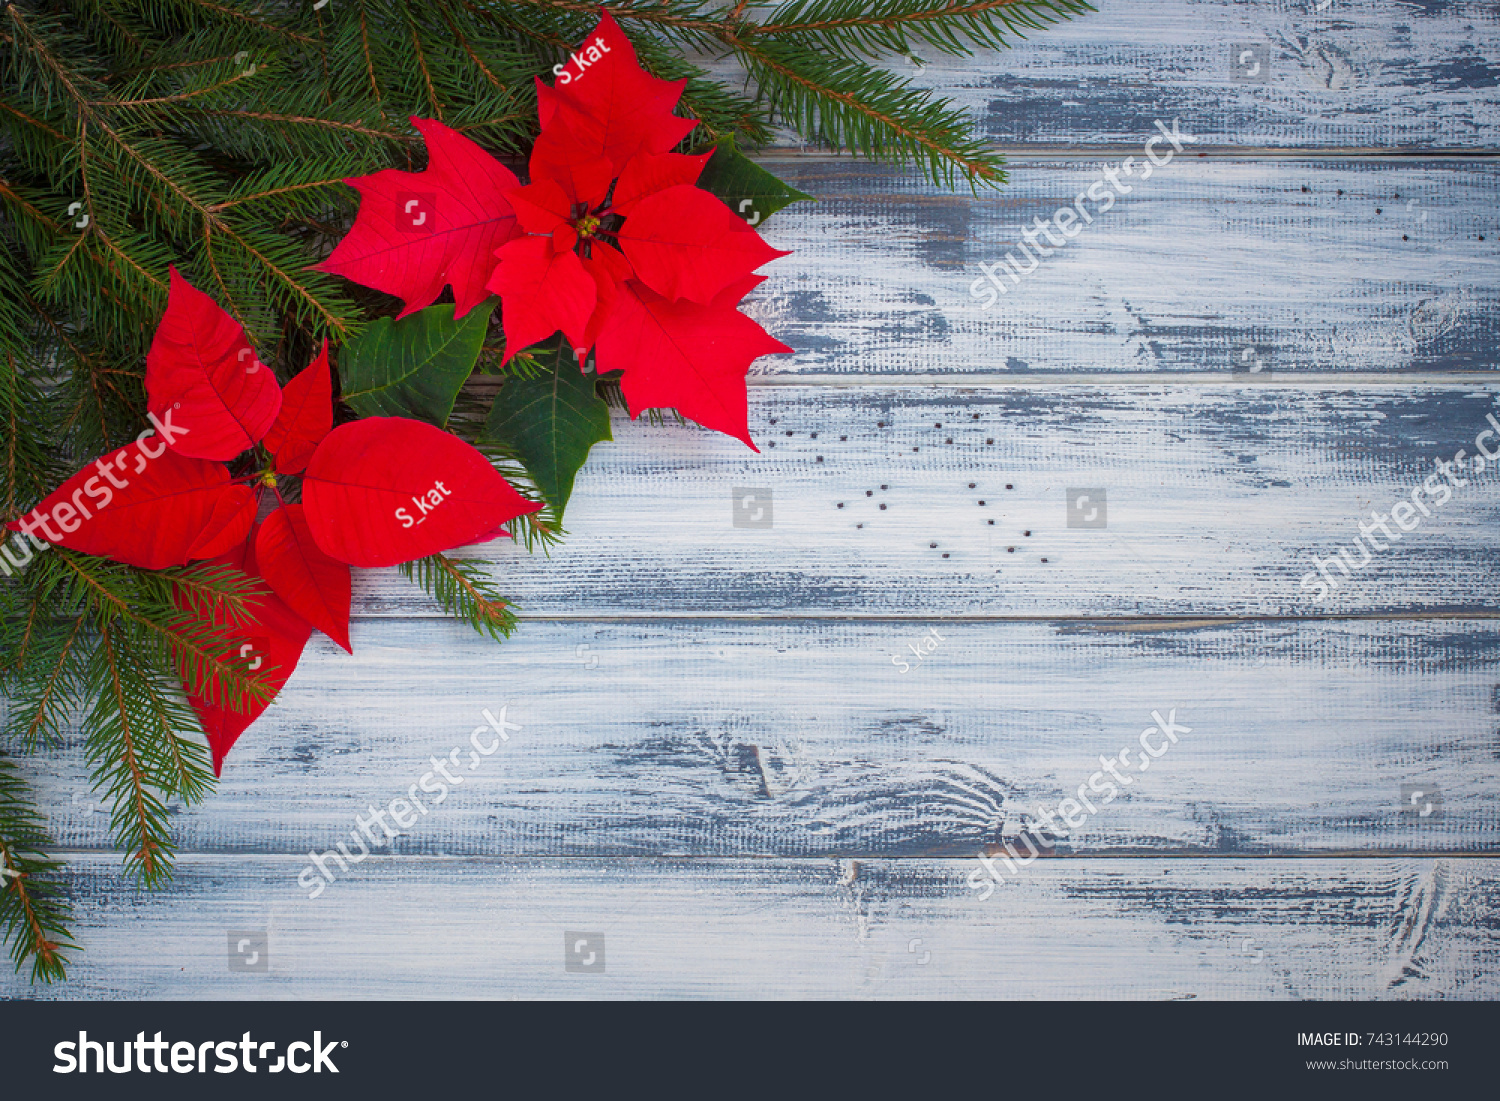 Red Poinsettia And Snow Christmas Flower On Wooden Background Ez